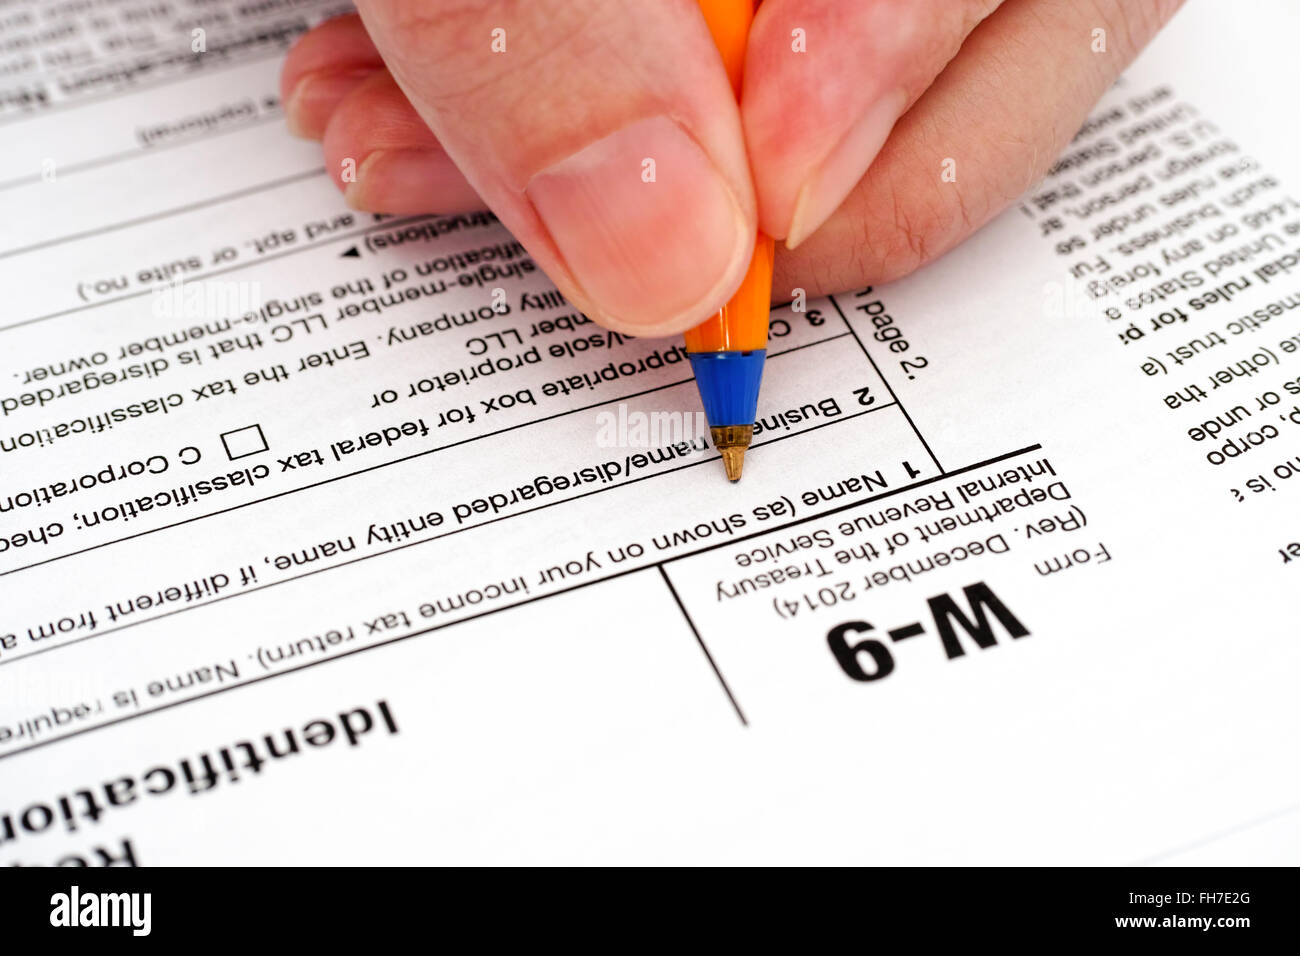 Person Hand With Pen Filling In Form W 9 Request For Taxpayer Stock